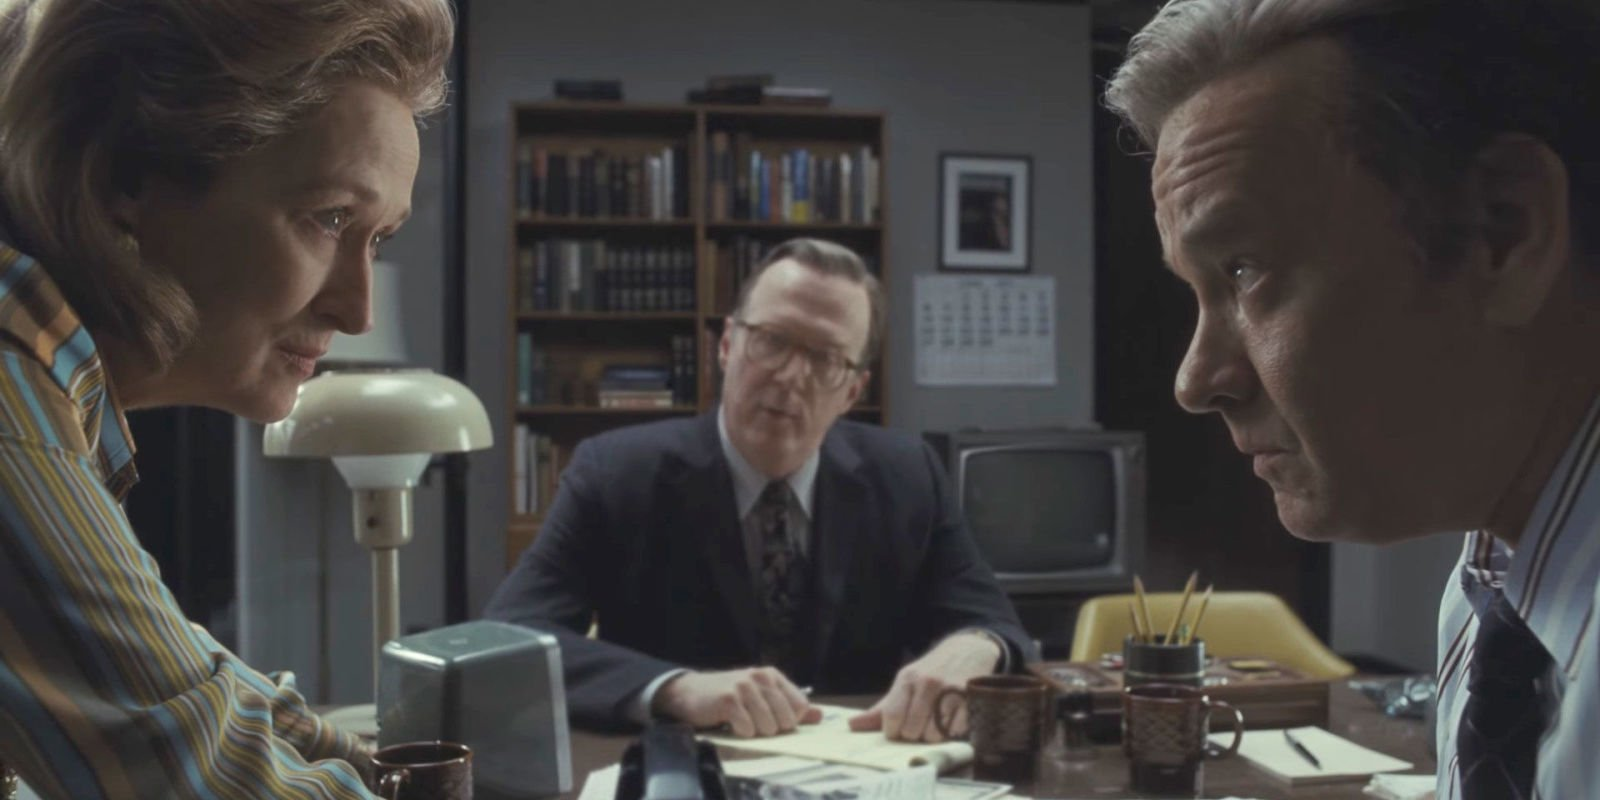 Steven Spielberg shot his new film The Post in nine months as a response to 'fake news'